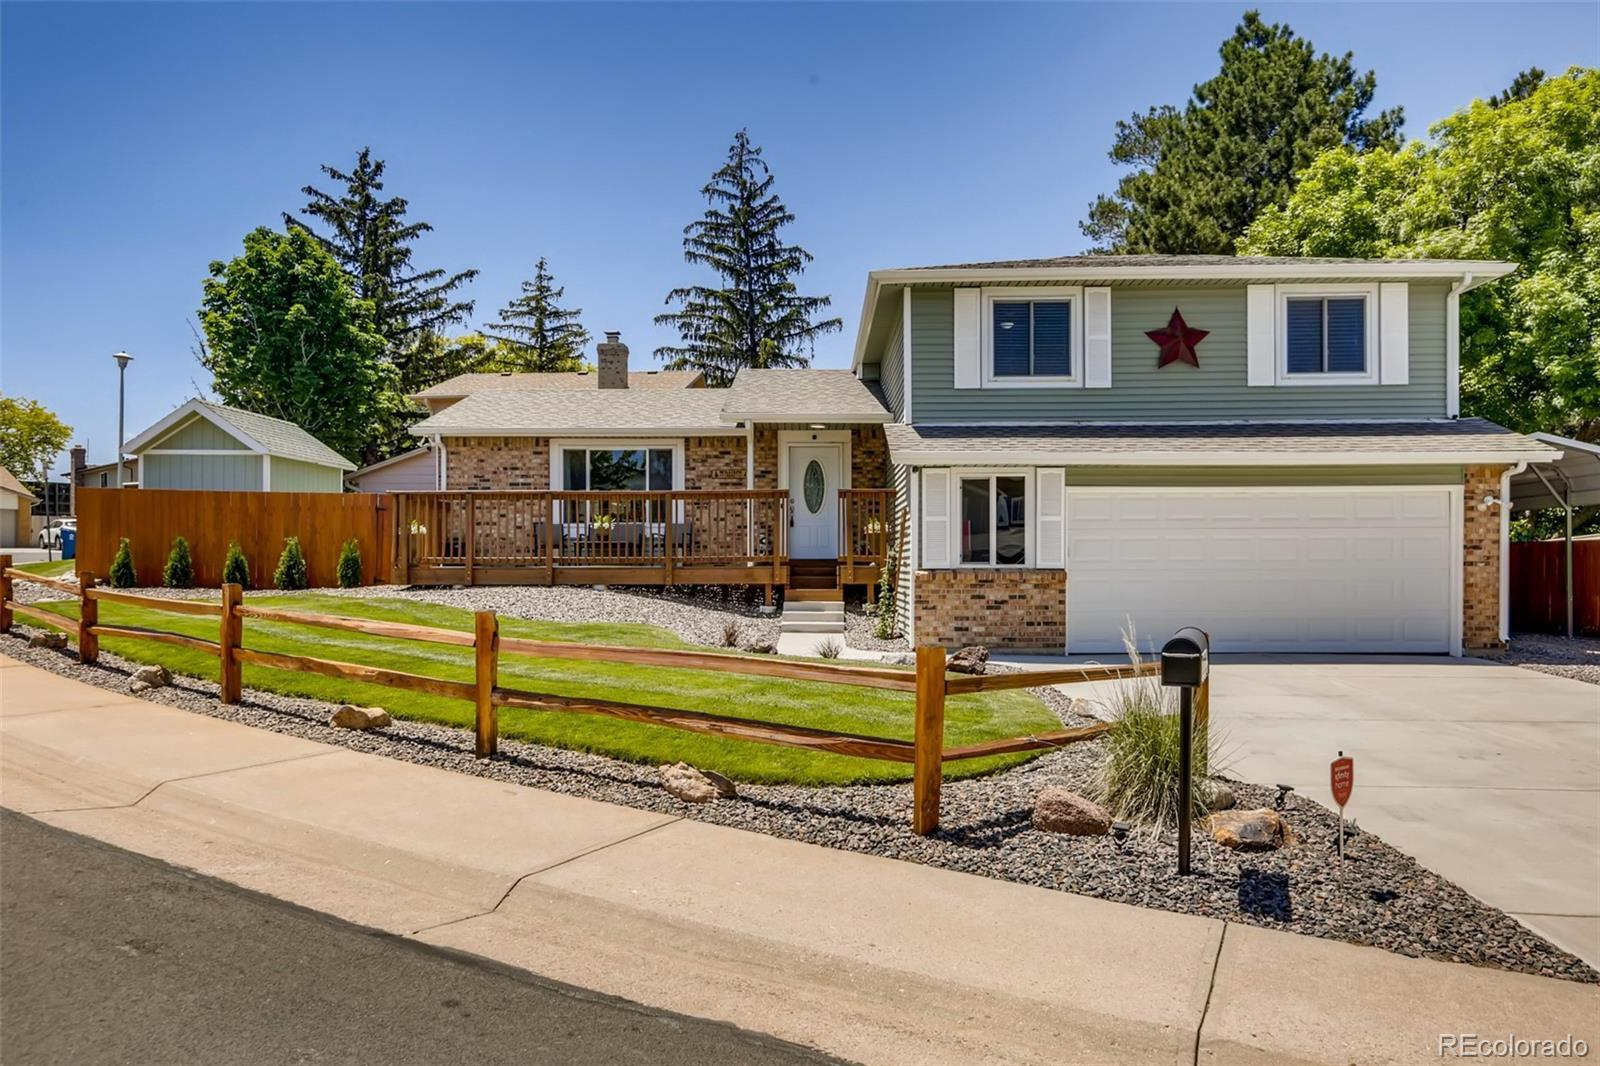 2527 W 104th Circle, Westminster, CO 80234 - #: 8628377